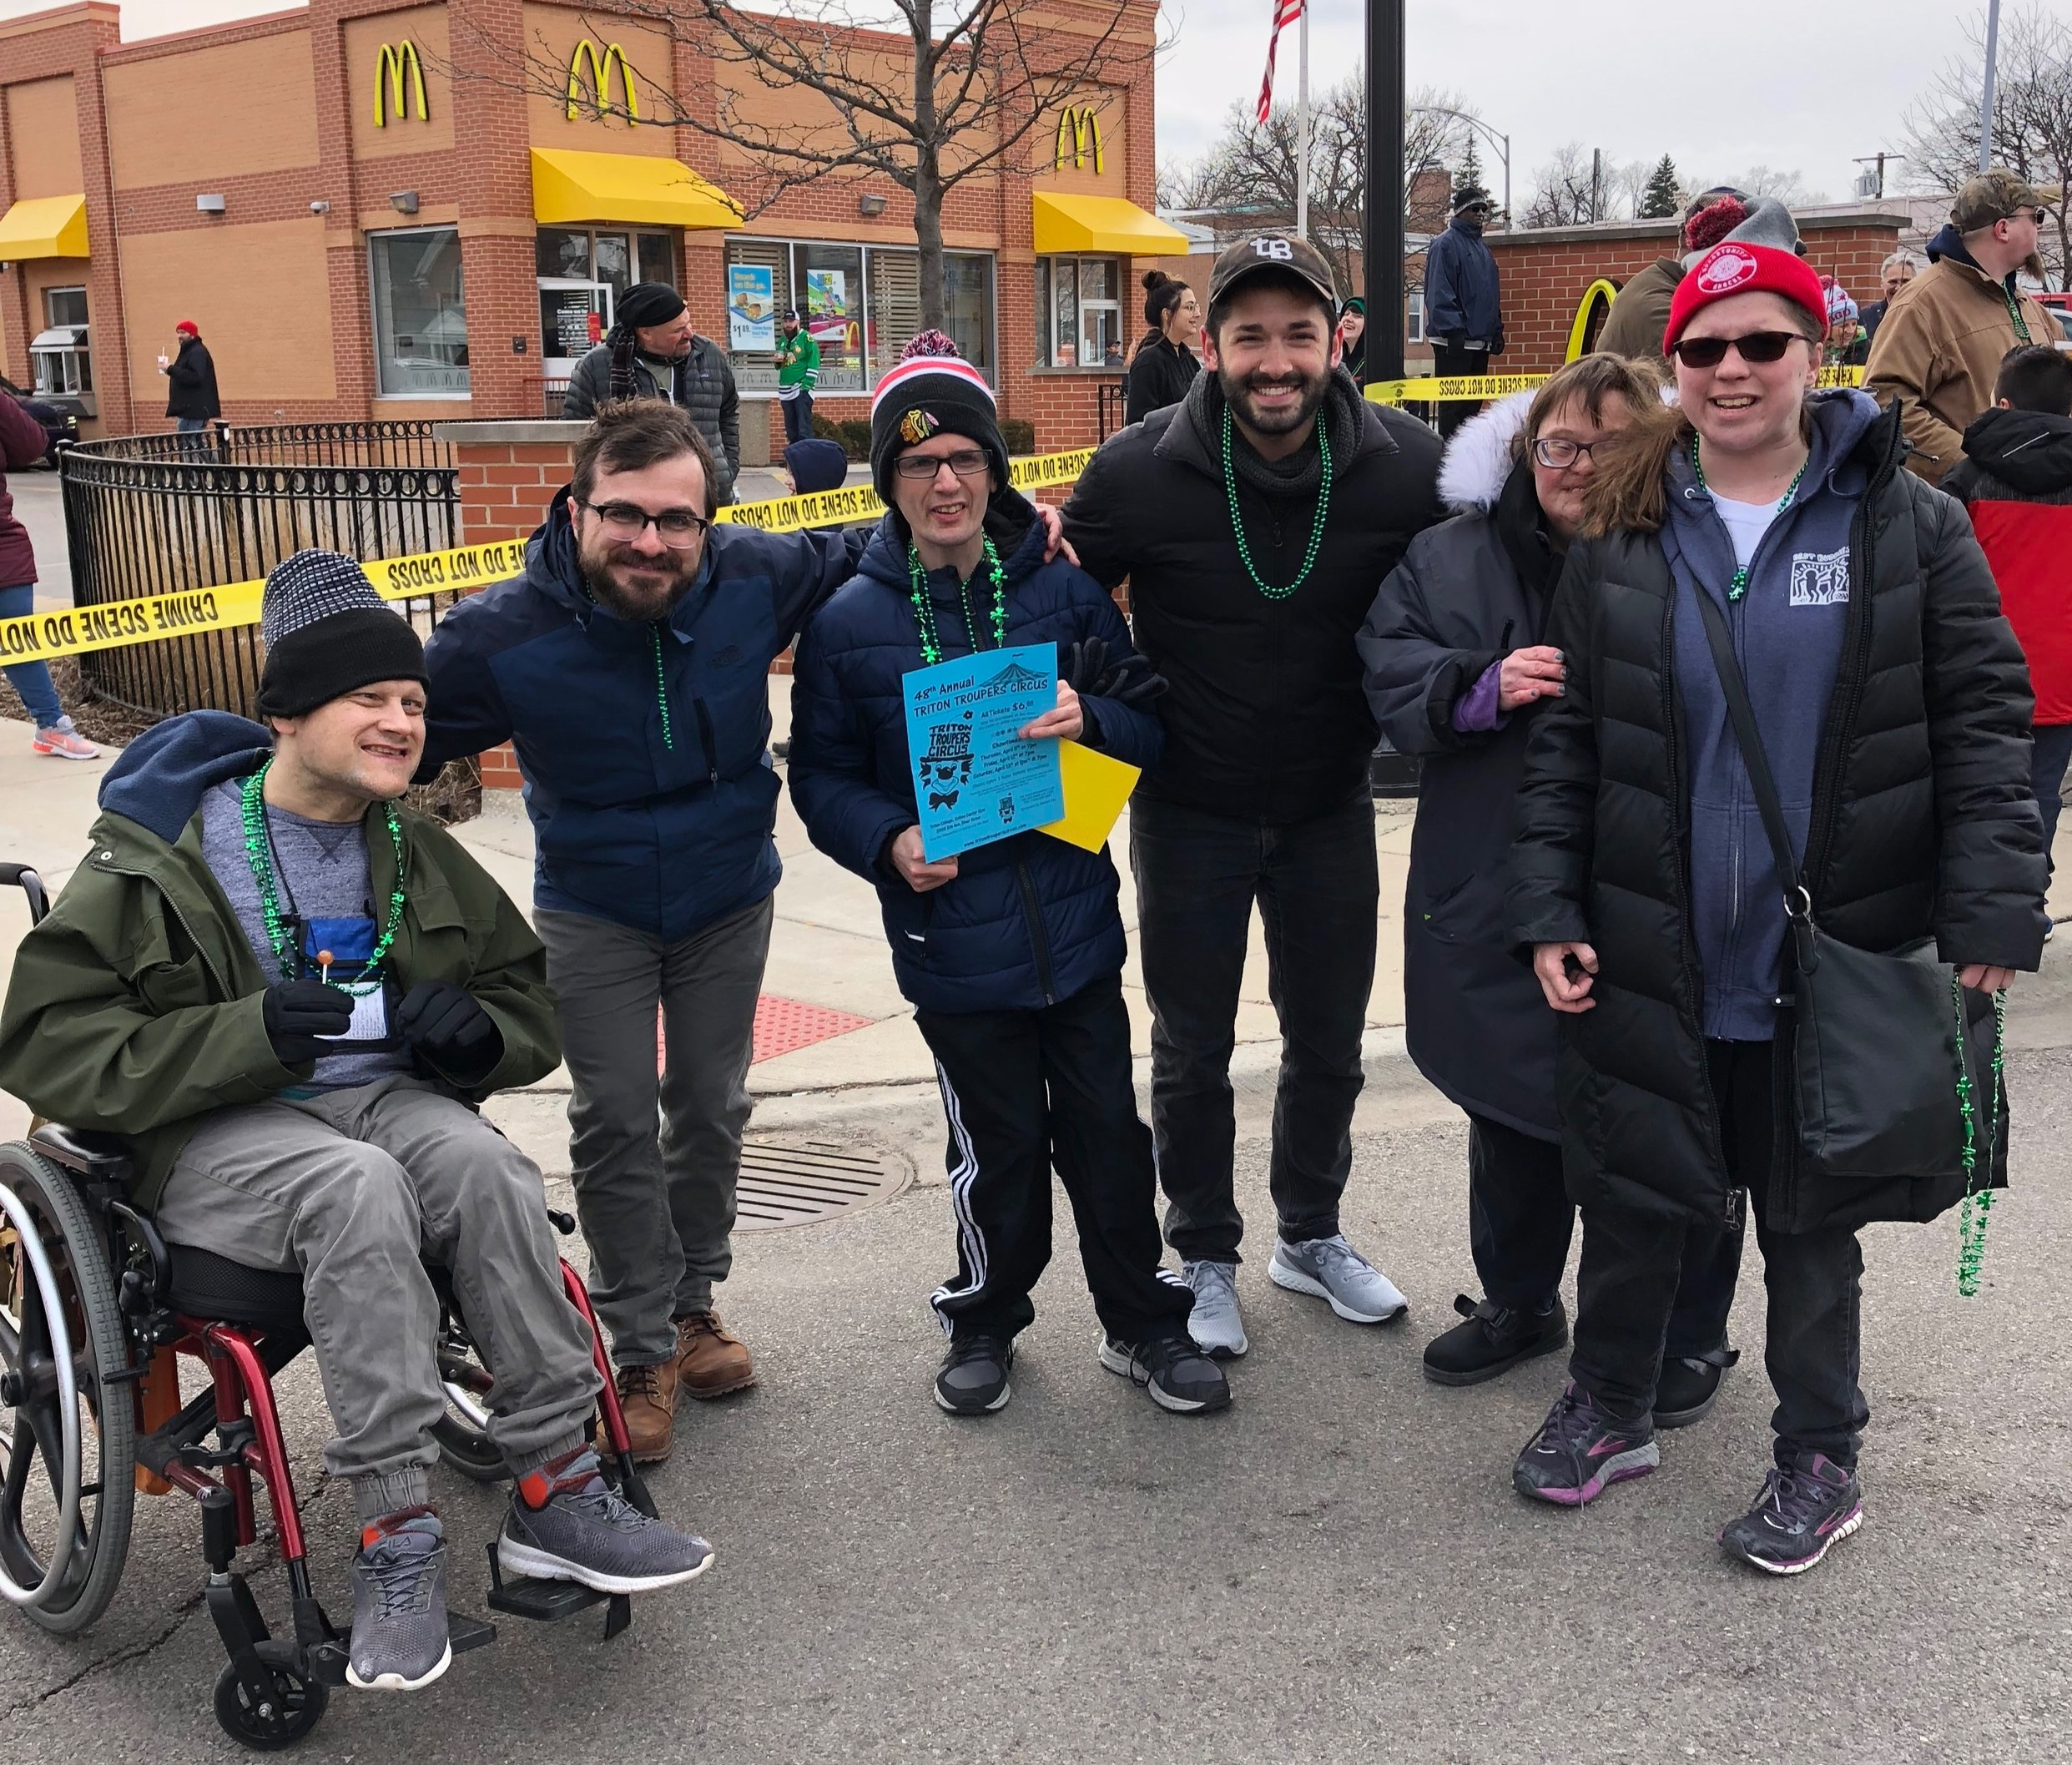 Photo taken during the St. Patrick's Day parade at River Forest [Nate Sullivan is 3rd from the right]